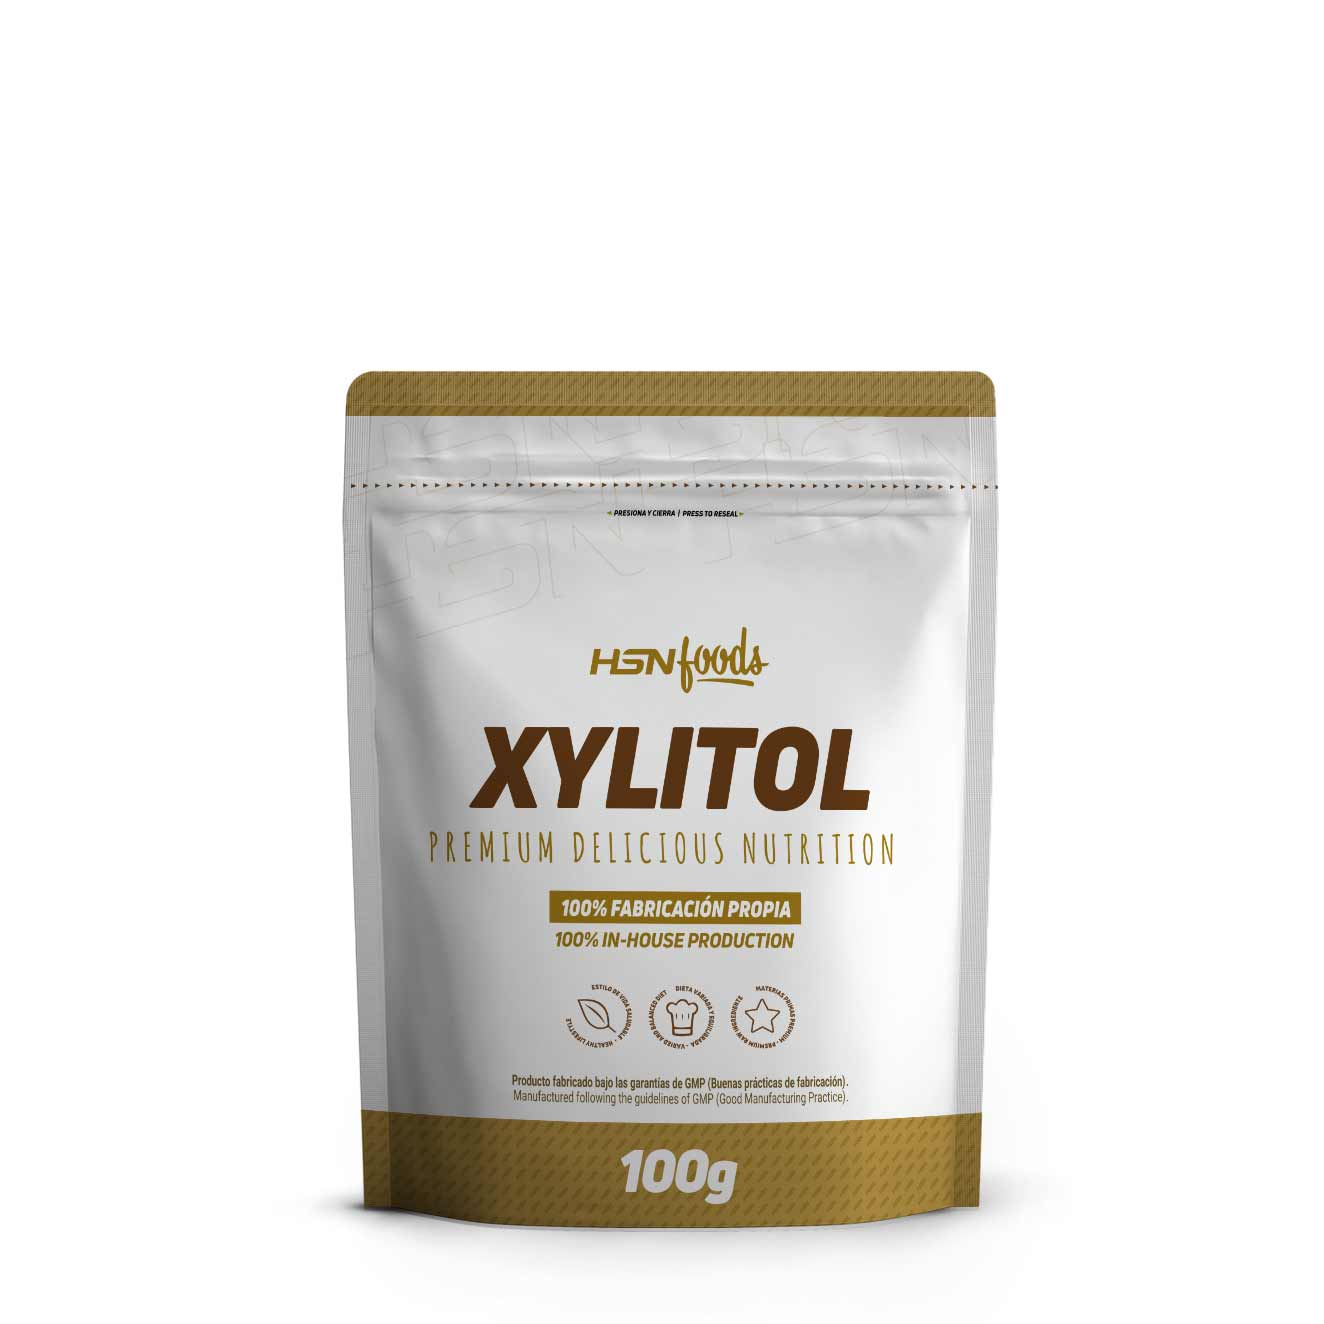 XYLITOL POWDER - 100g